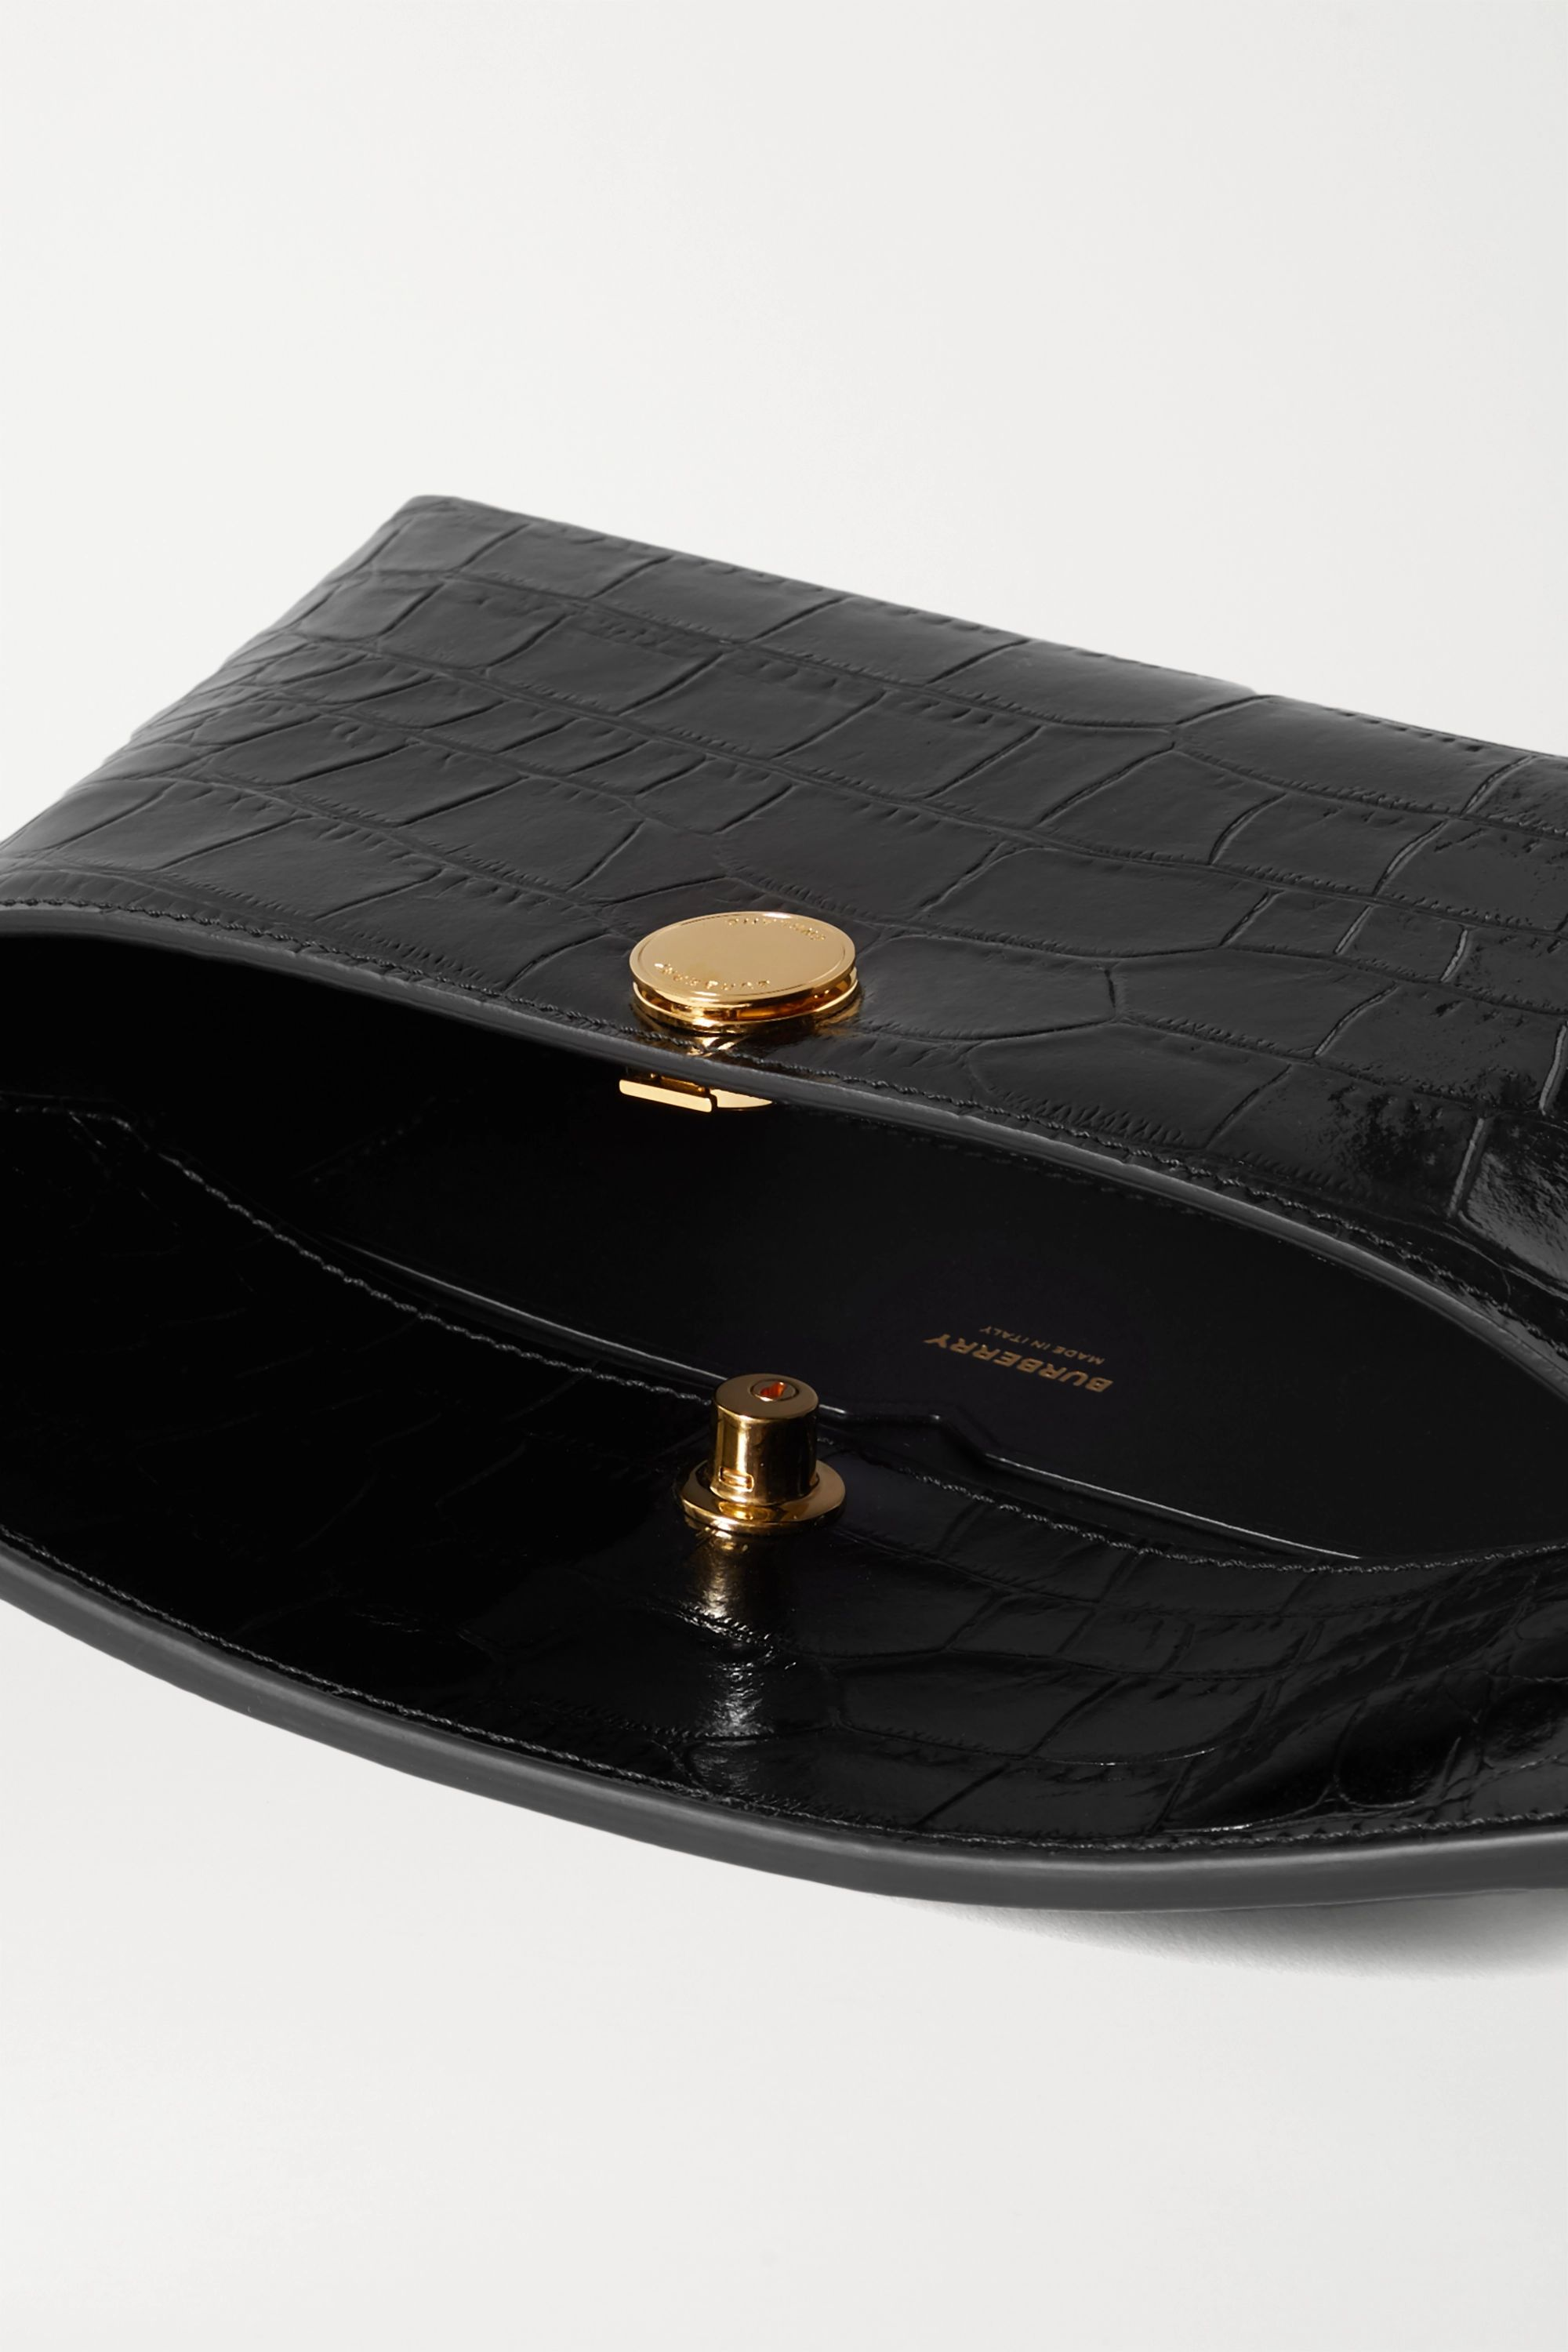 Burberry Glossed croc-effect leather clutch